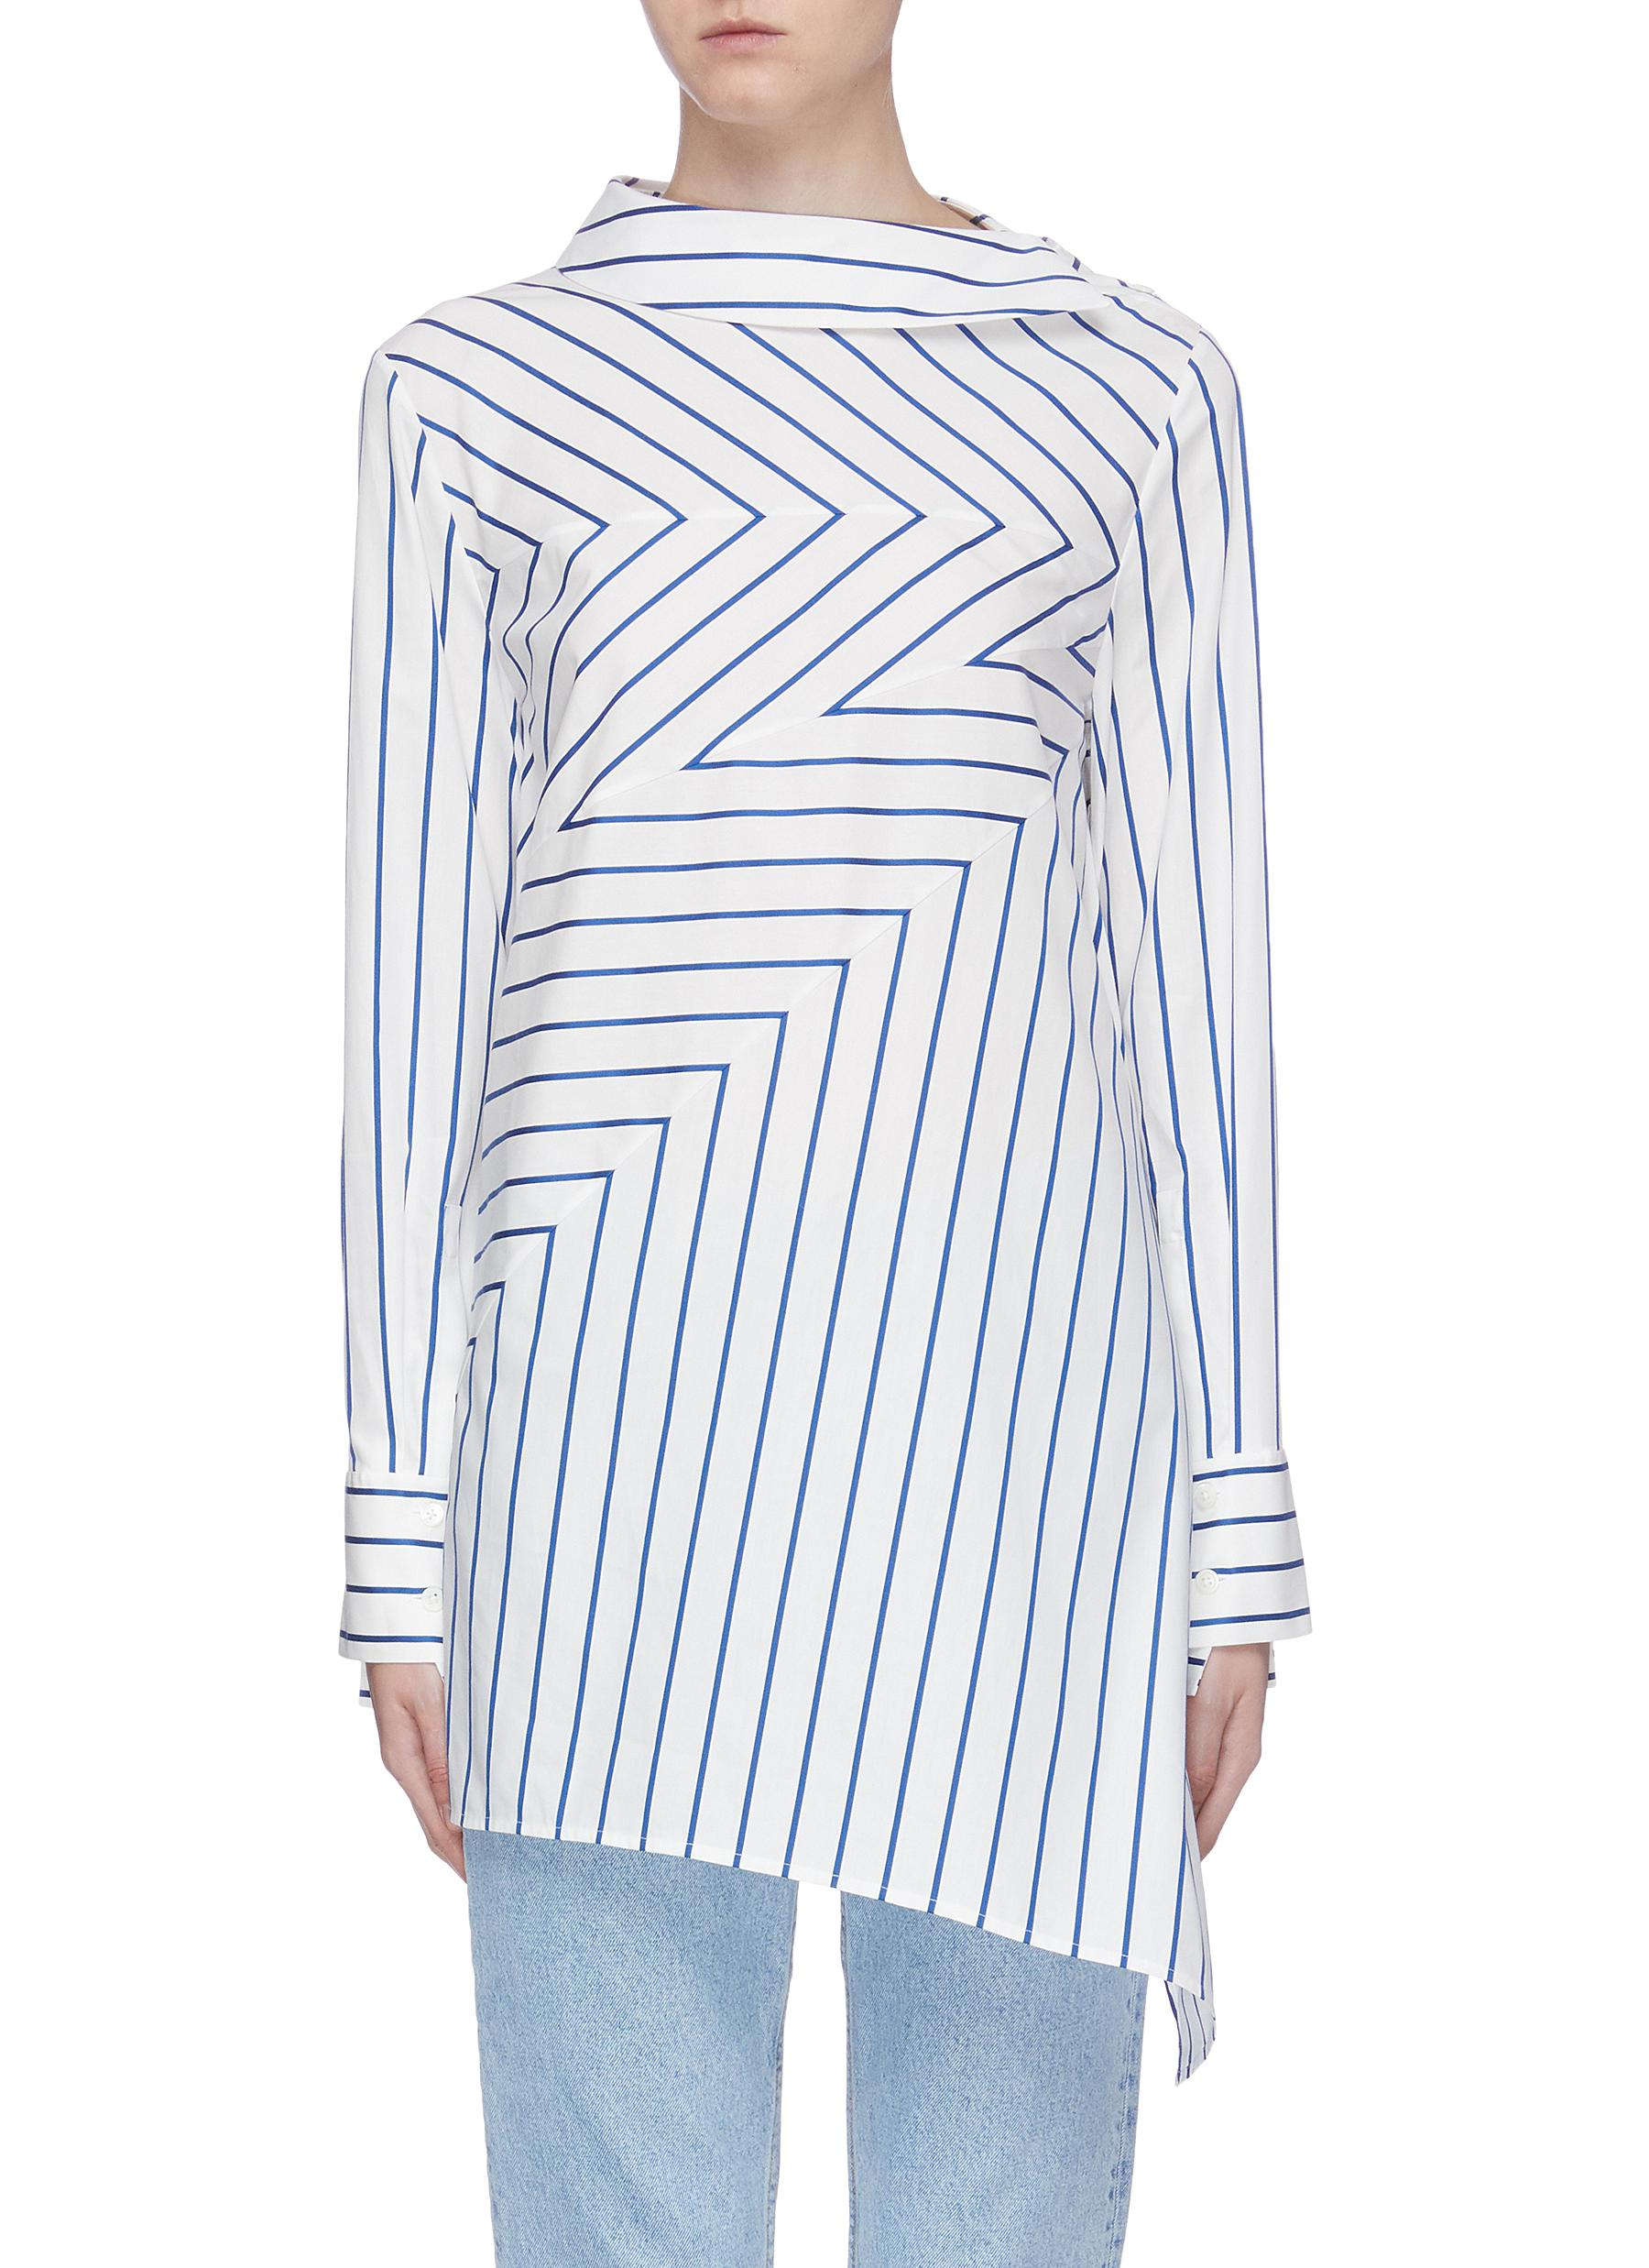 Panelled stripe tunic top by Portspure